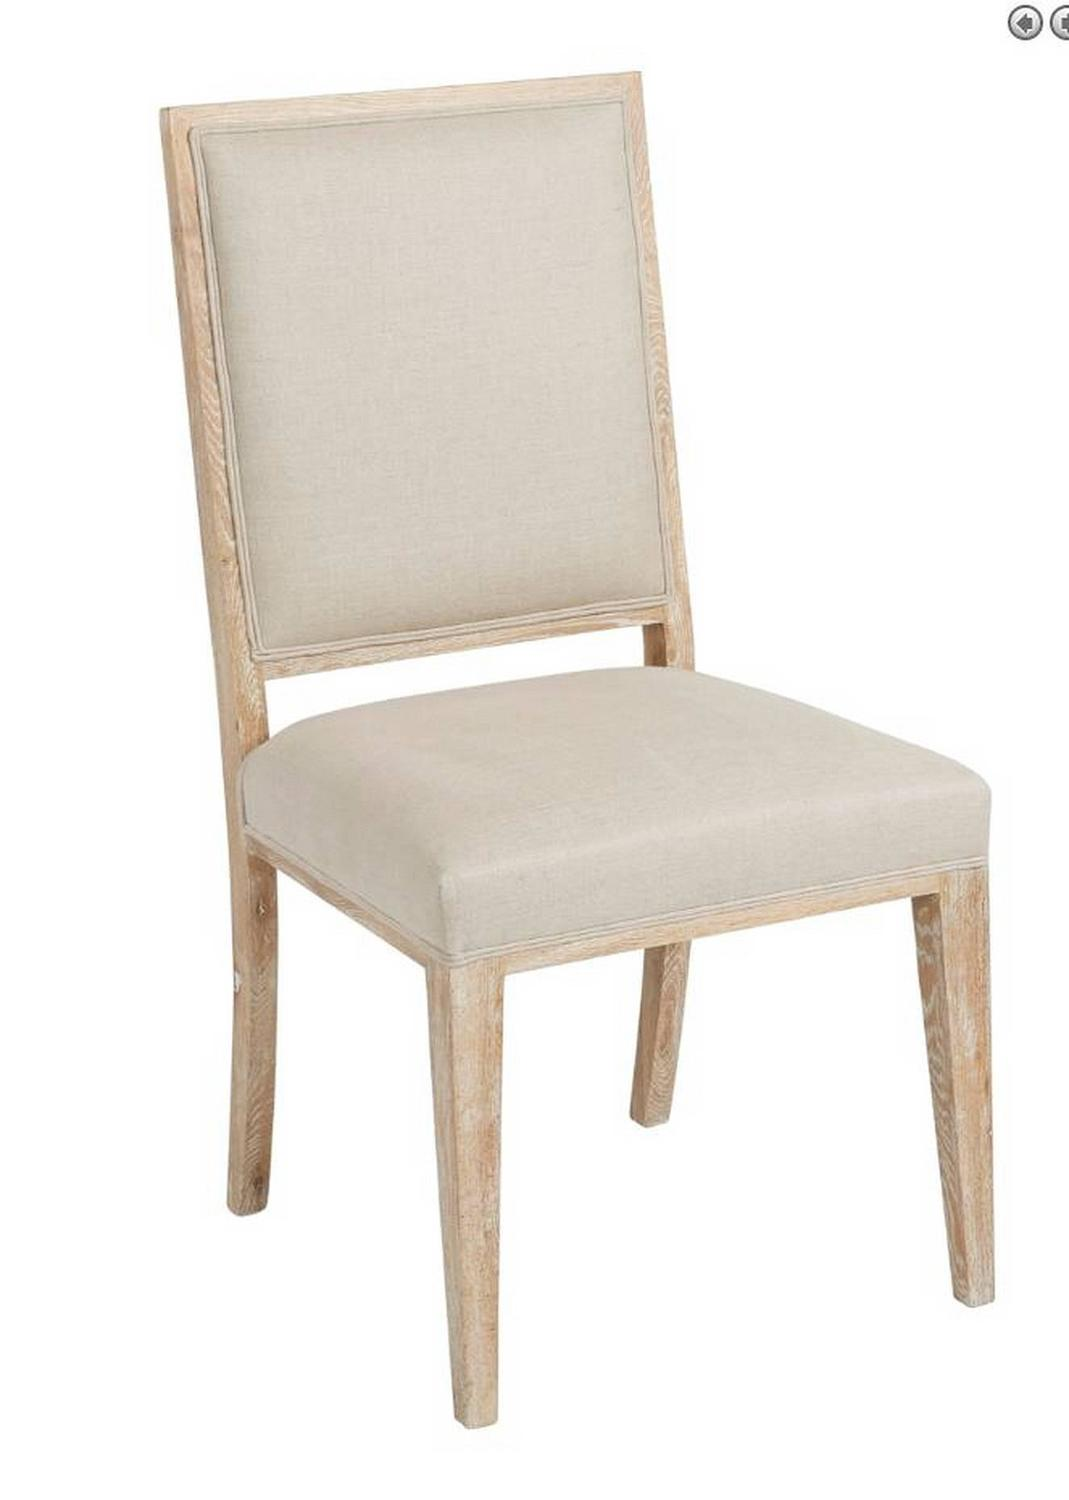 Upholstered white wash dining chair for sale at stdibs